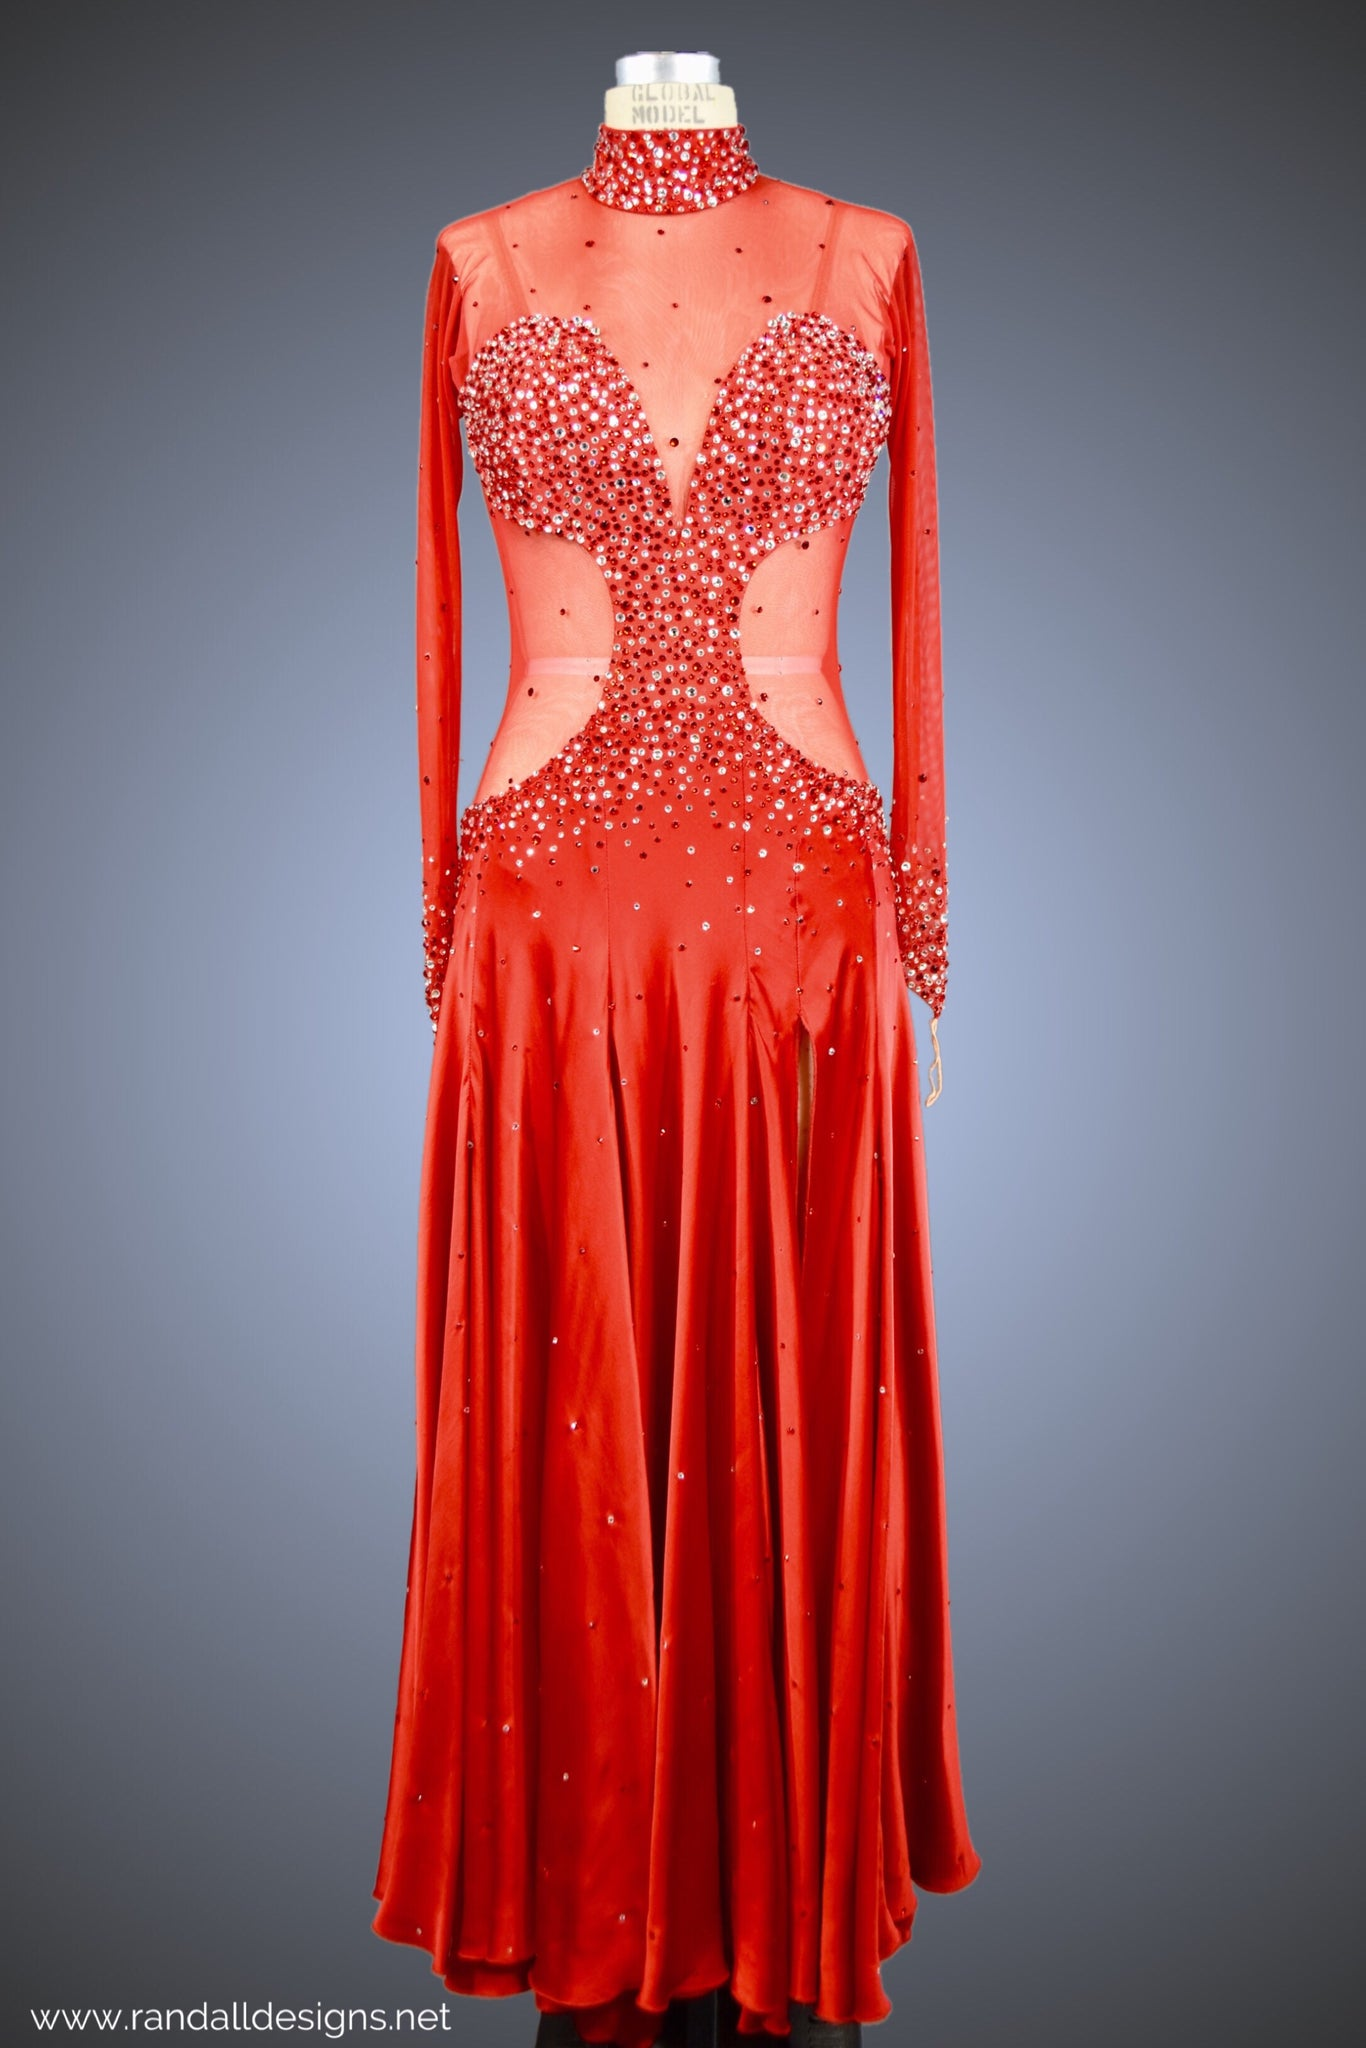 Red Silk Charmeuse Gown with Red Mesh & Jersey Bodice - Dress by Randall Designs